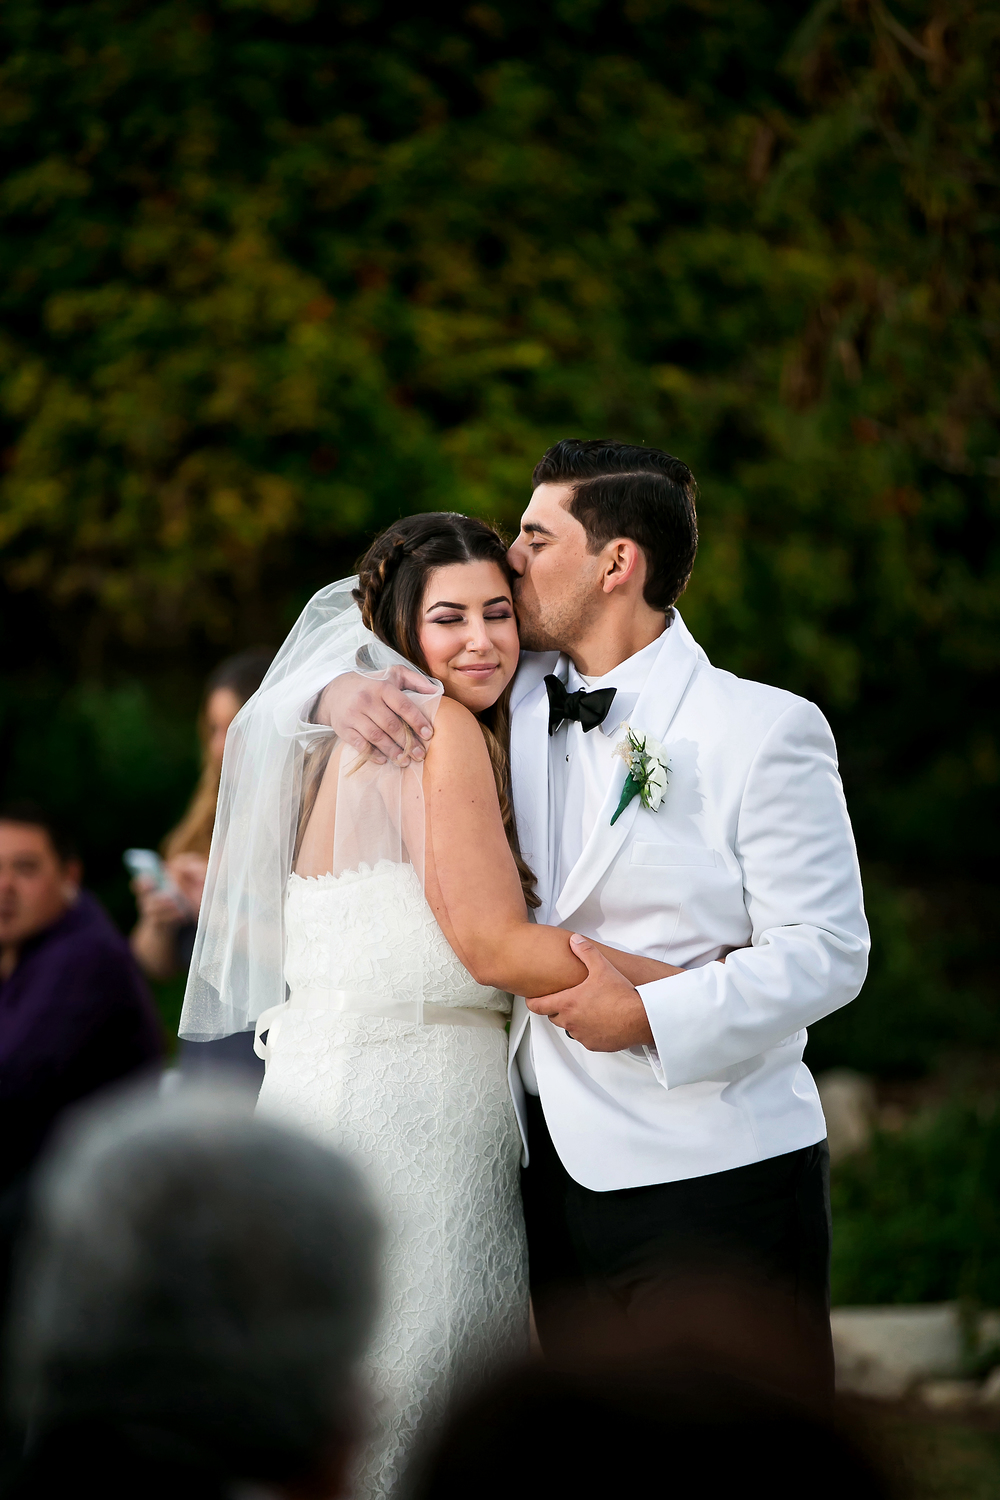 los angeles wedding photographer_ south coast botanic garden_wedding_09.jpg